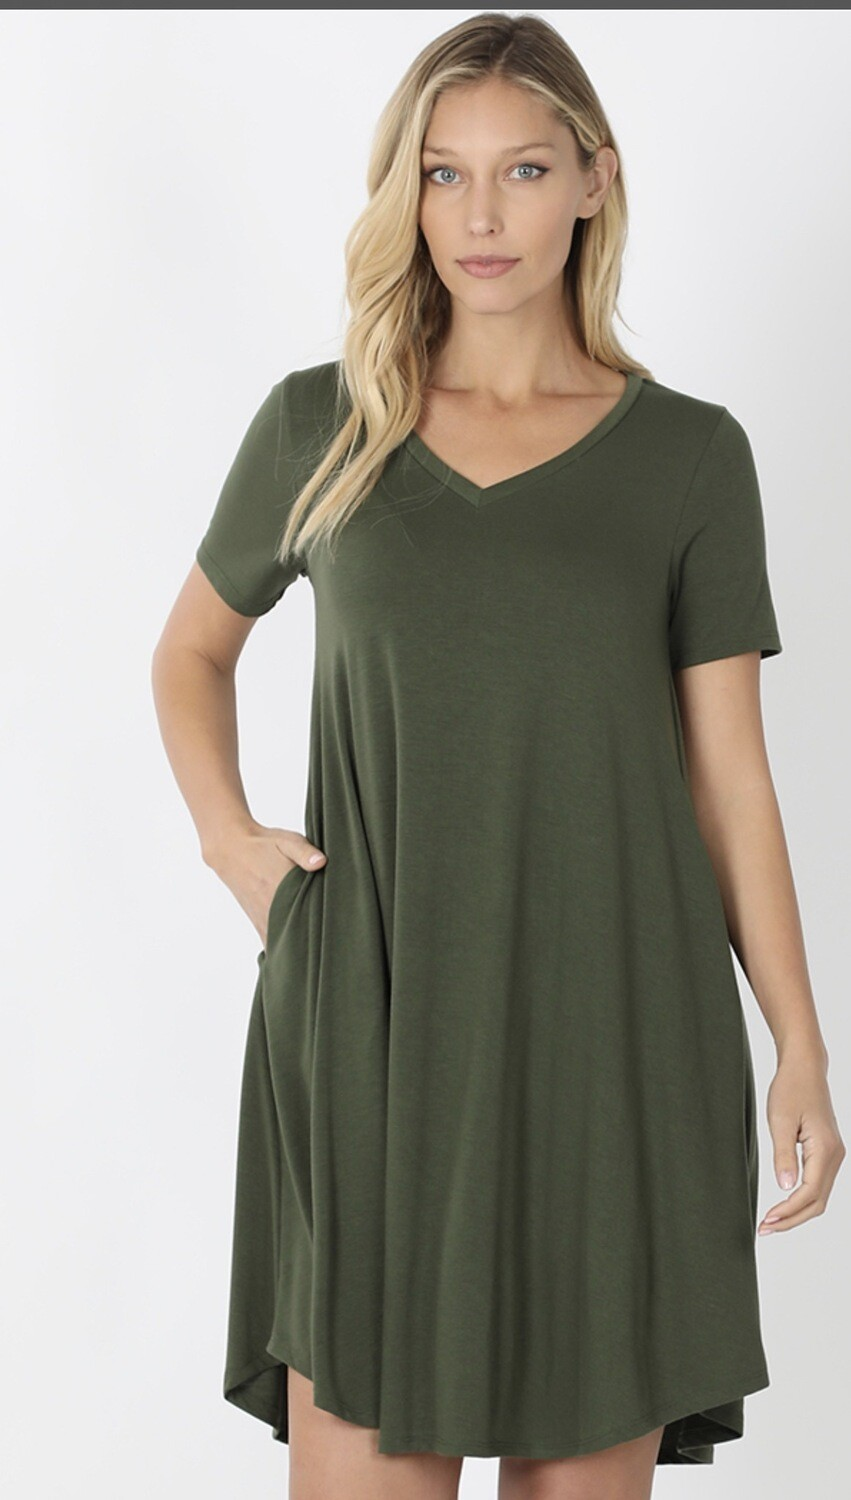 V Neck T-shirt Dress W/ Pockets